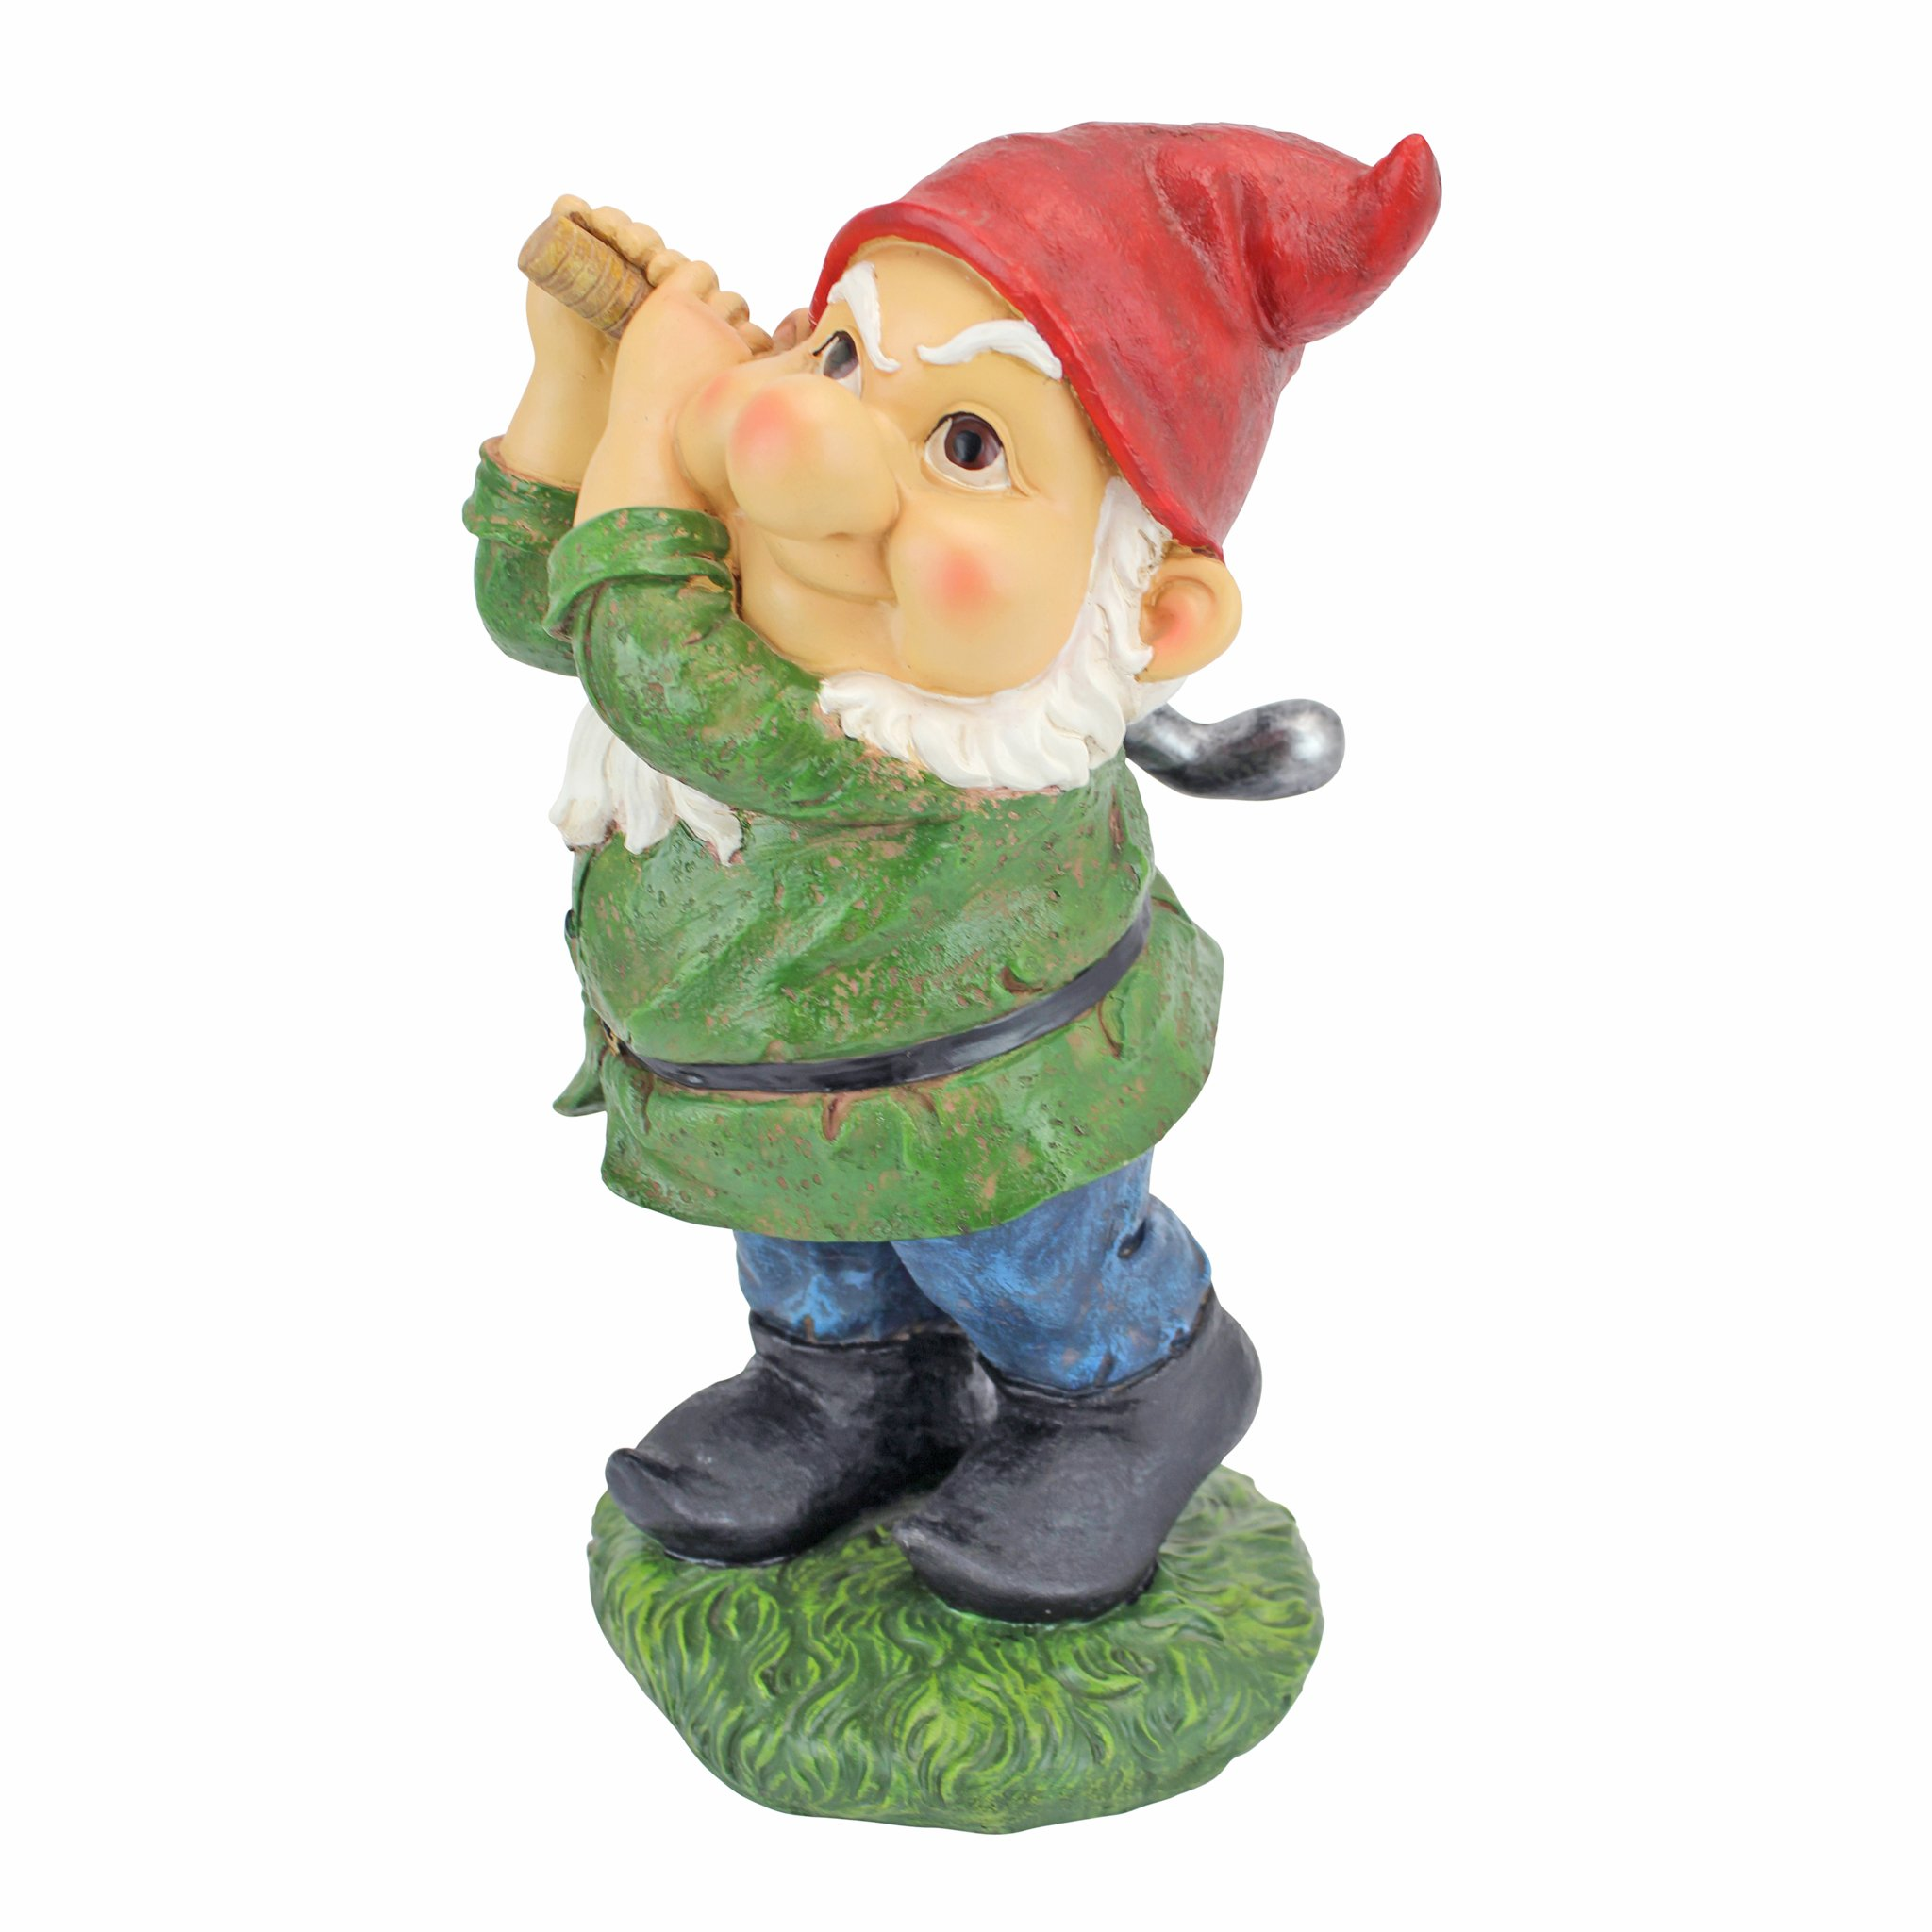 Design Toscano Bigey Burt Funny Golfing Garden Gnome Statue, 12 inch, Polyresin, Full Color